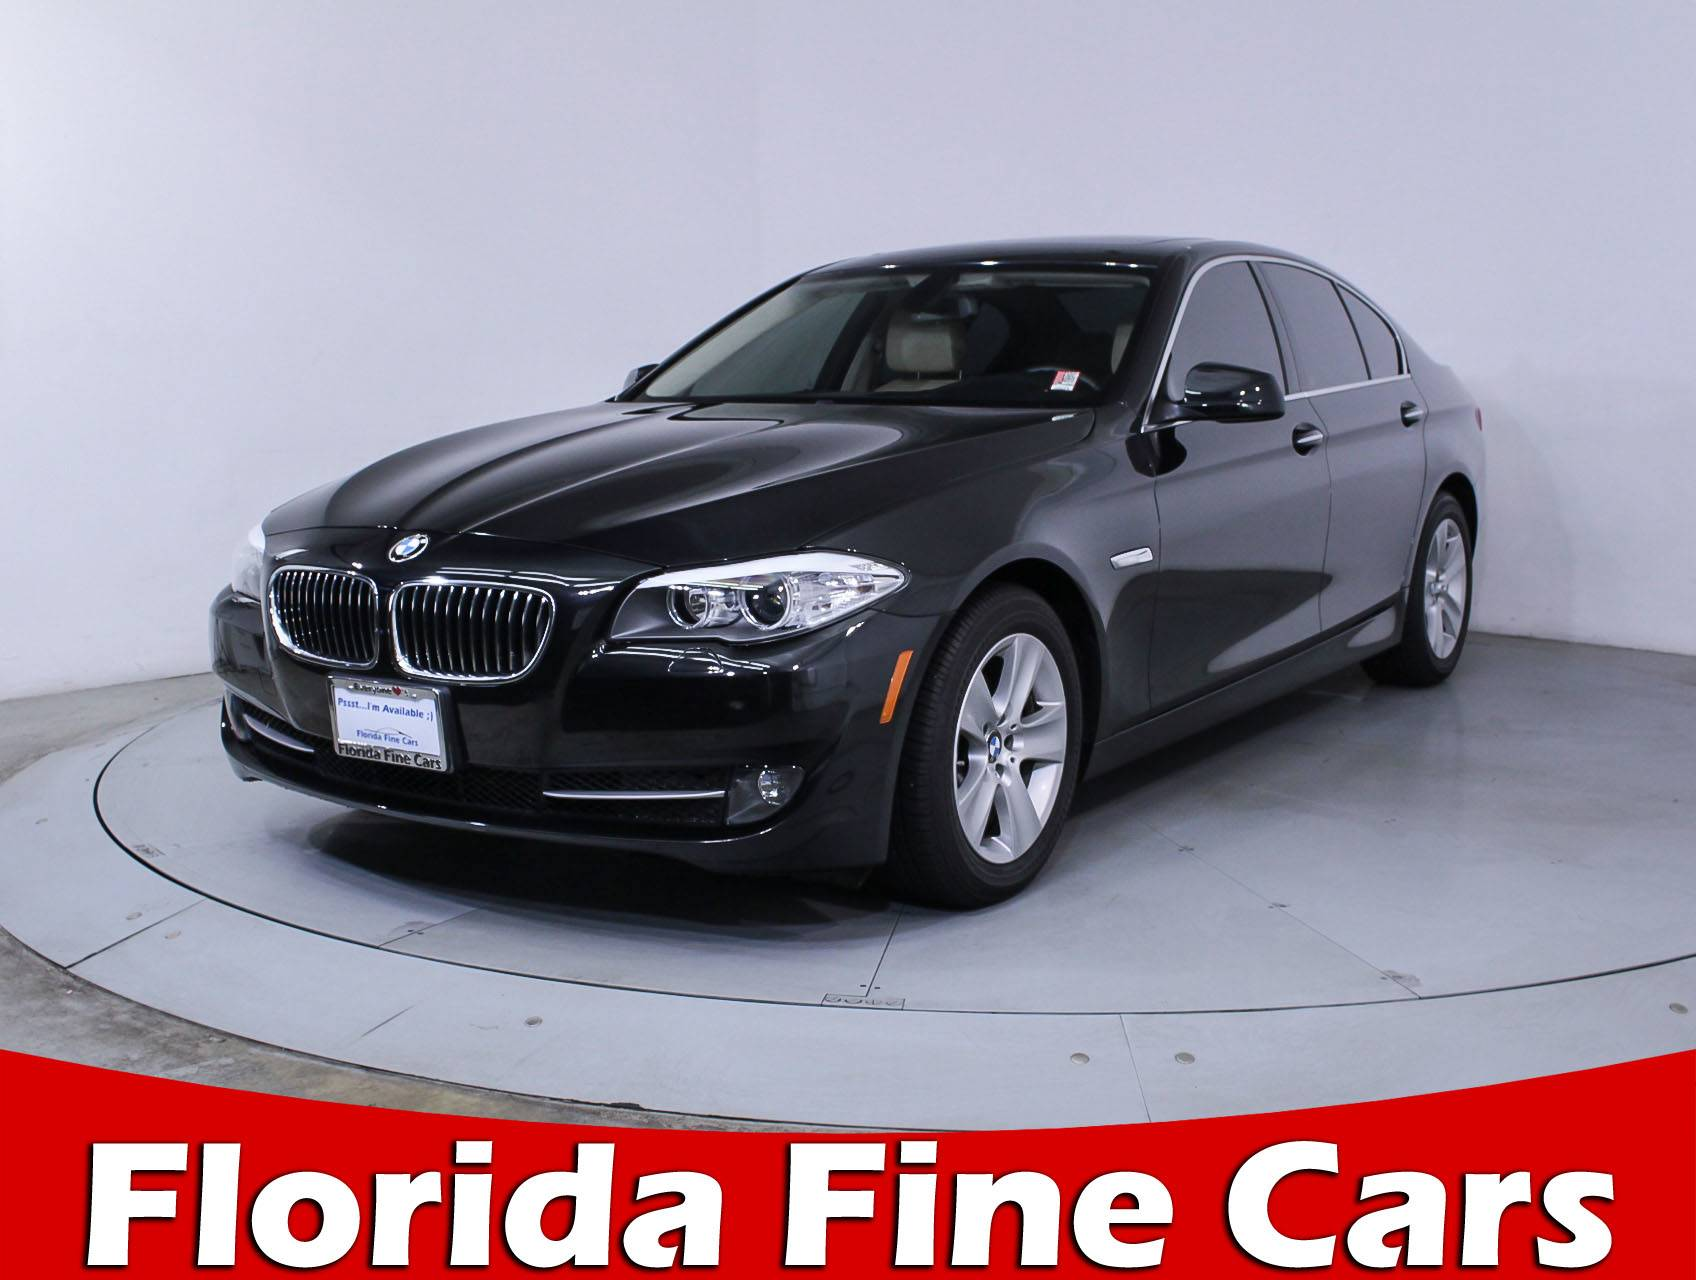 en lot on view carfinder destruction bmw fl in charcoal north series left for sale certificate online auto orlando of auctions copart i